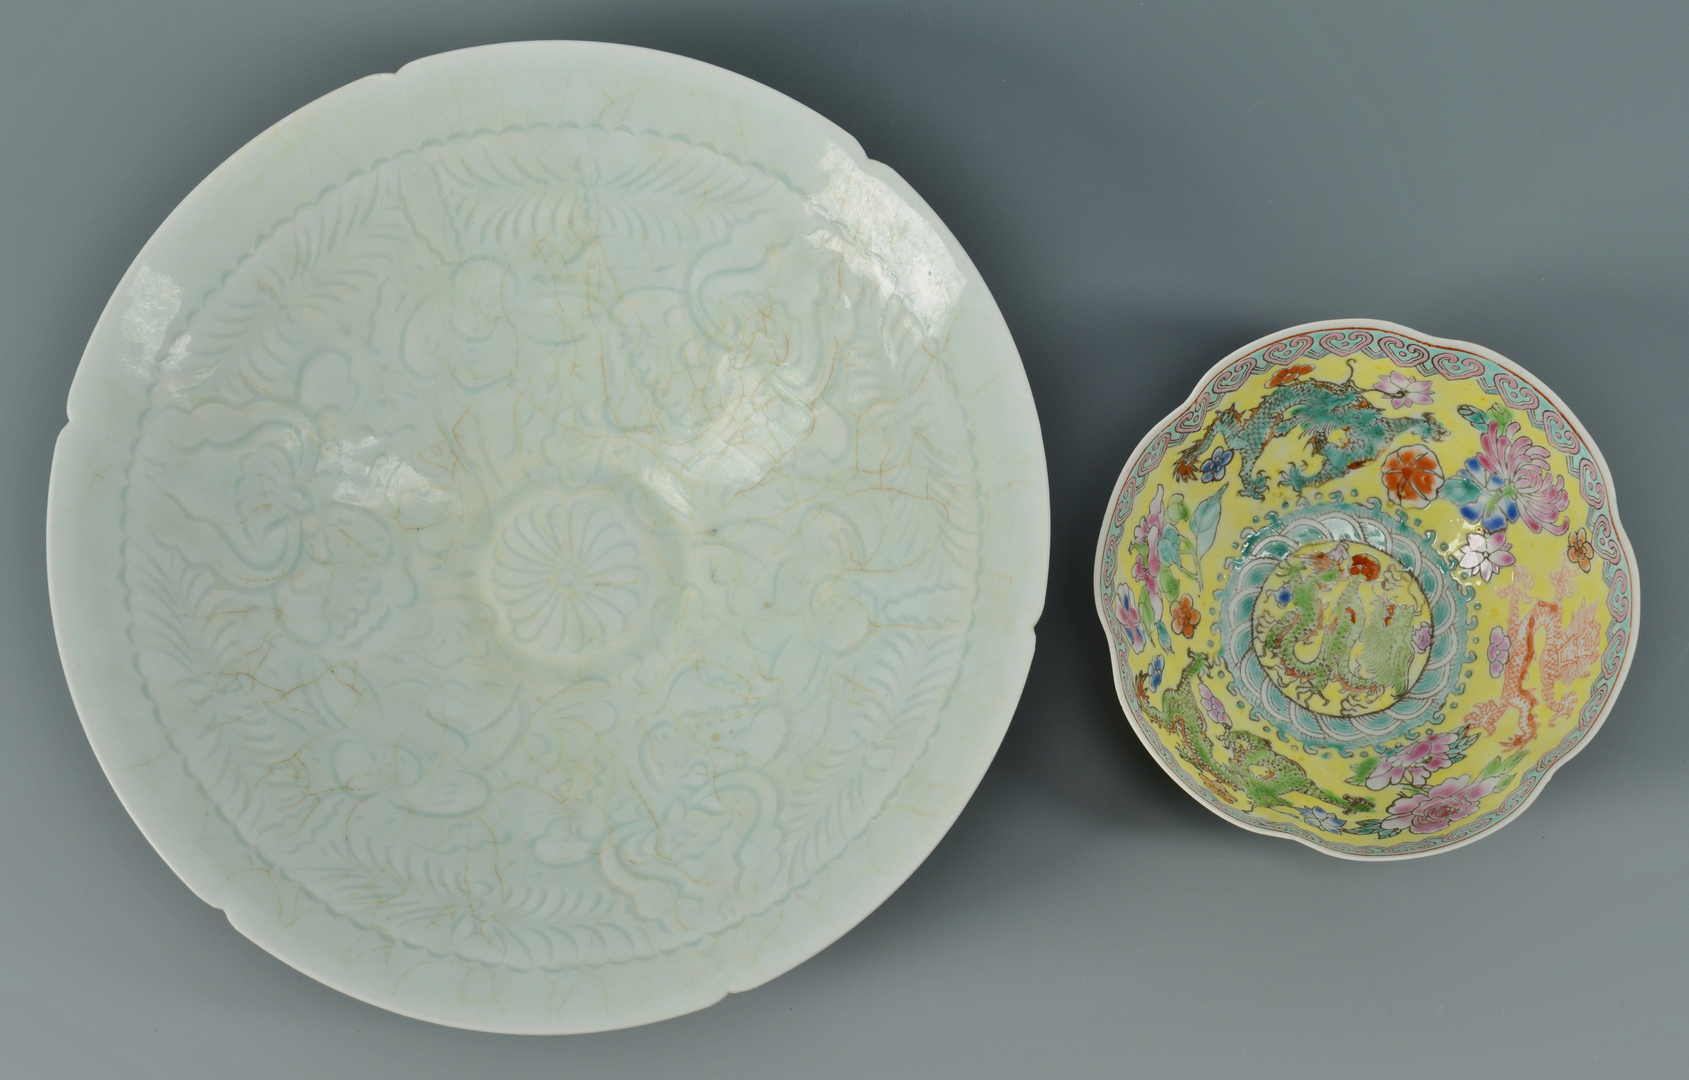 Lot 3088271: 4 Chinese Decorative Items